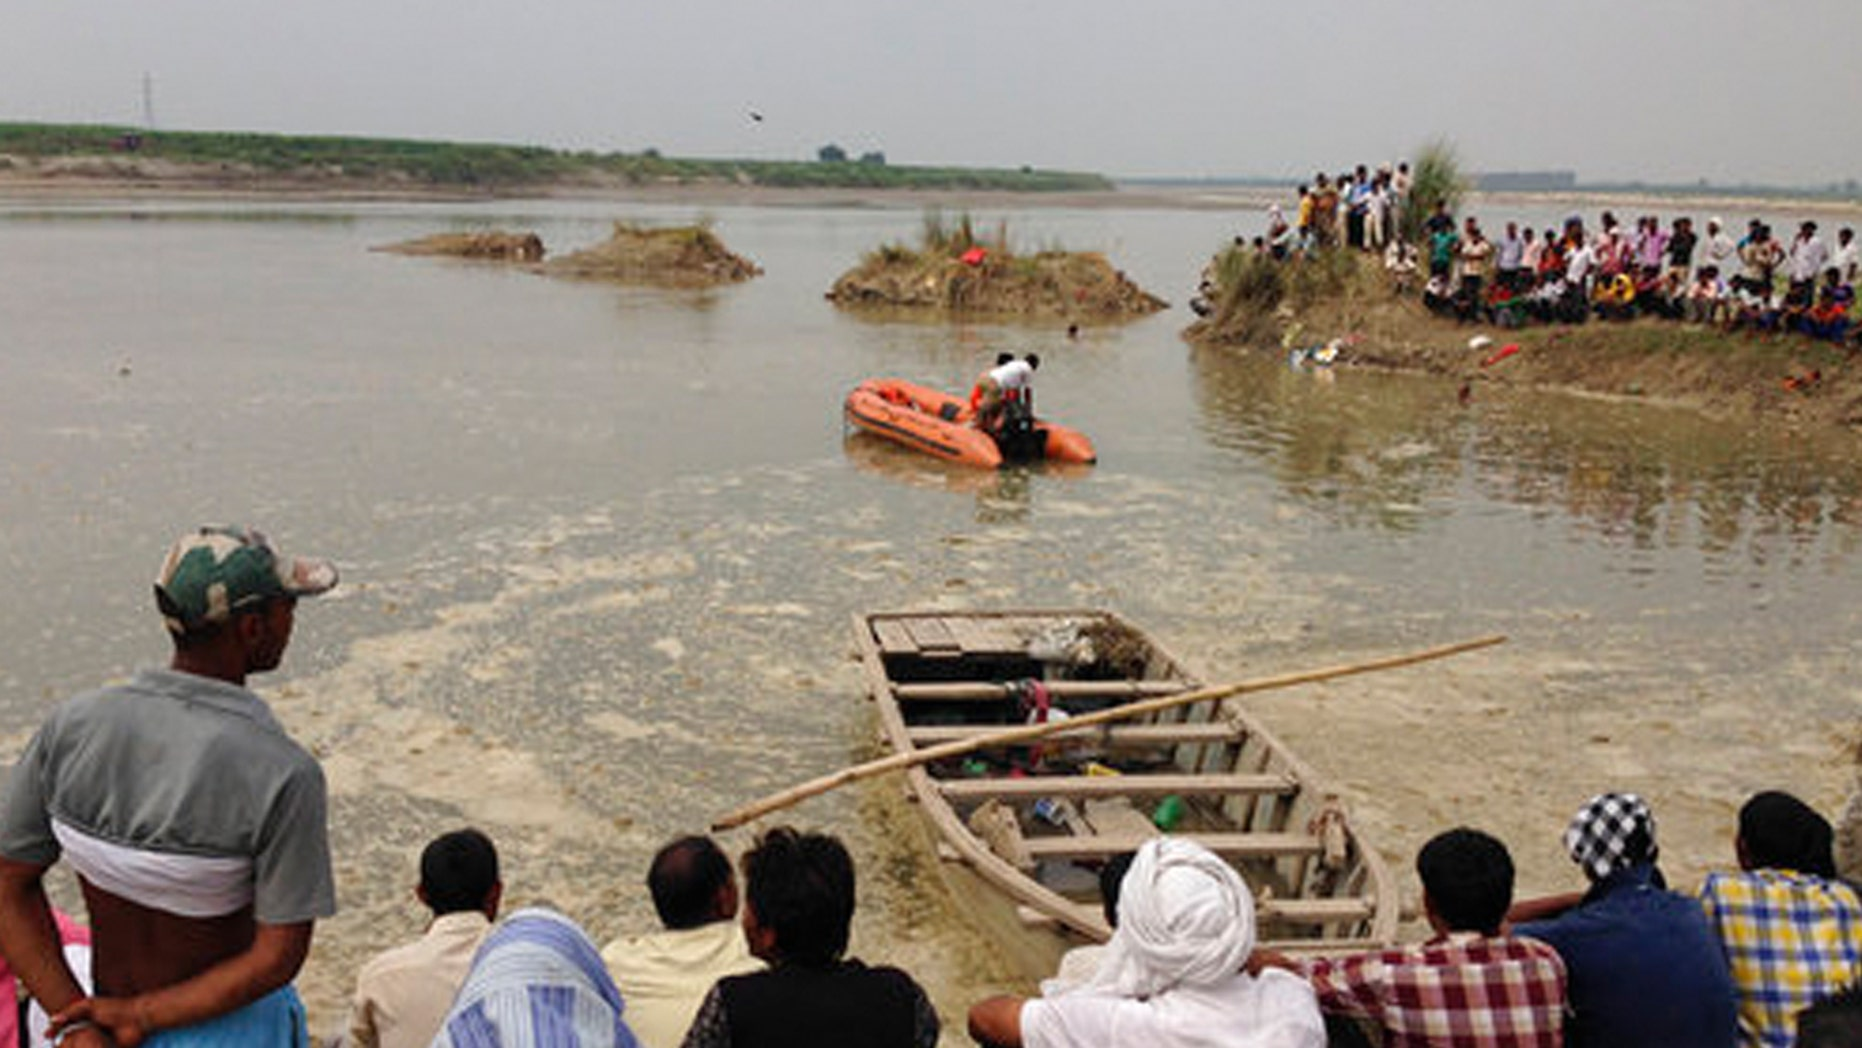 Rescuers search in the Yamuna River as villagers gather after a country boat, seen in foreground, capsized near Baghpat town in Uttar Pradesh state, India, Thursday, Sept.14, 2017. The boat crowded with construction workers capsized early Thursday and nineteen bodies have been pulled out of the river so far. (AP Photo/Altaf Qadri)